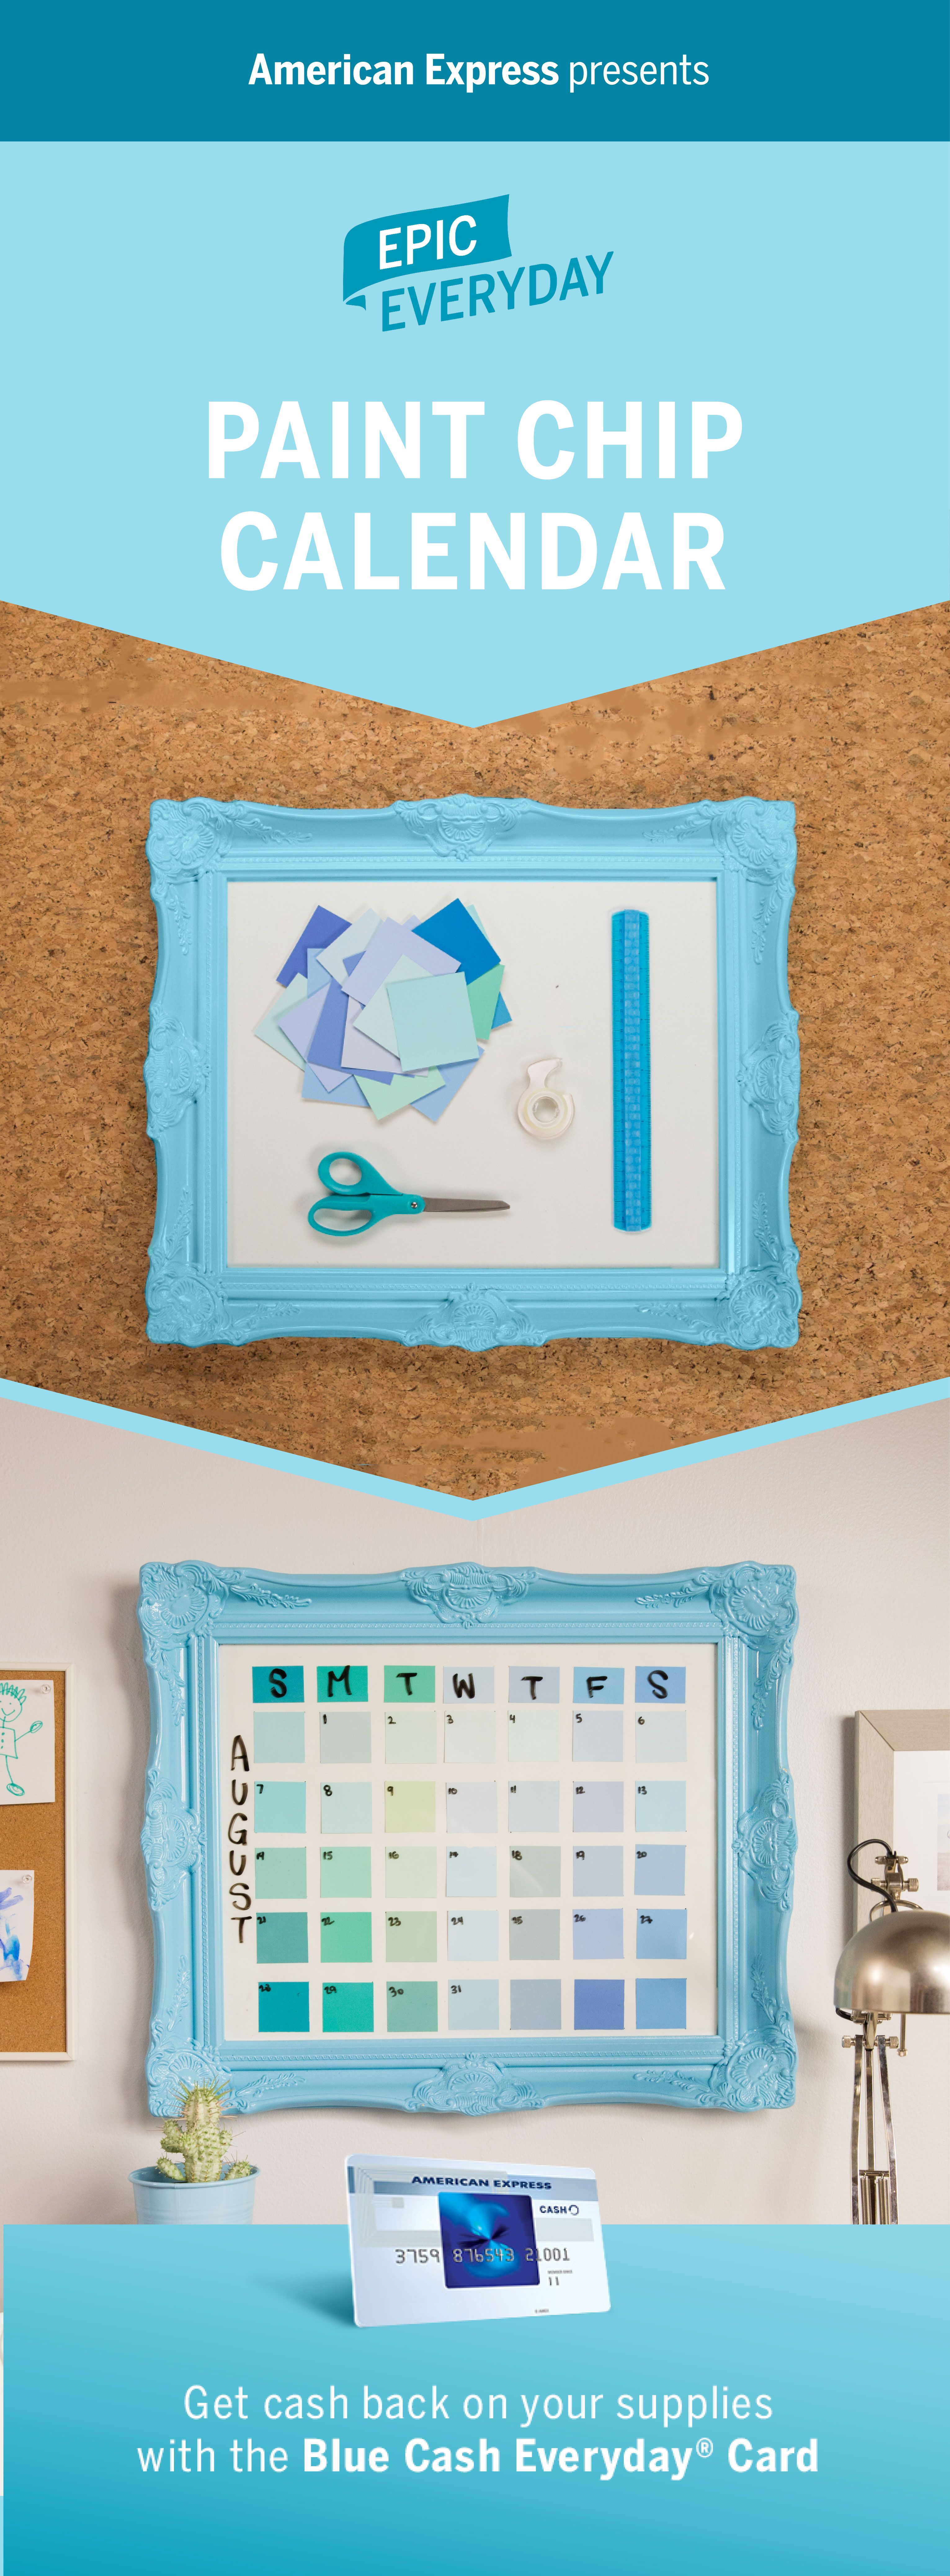 Add some epic color to your office or home with a DIY project. Get ...